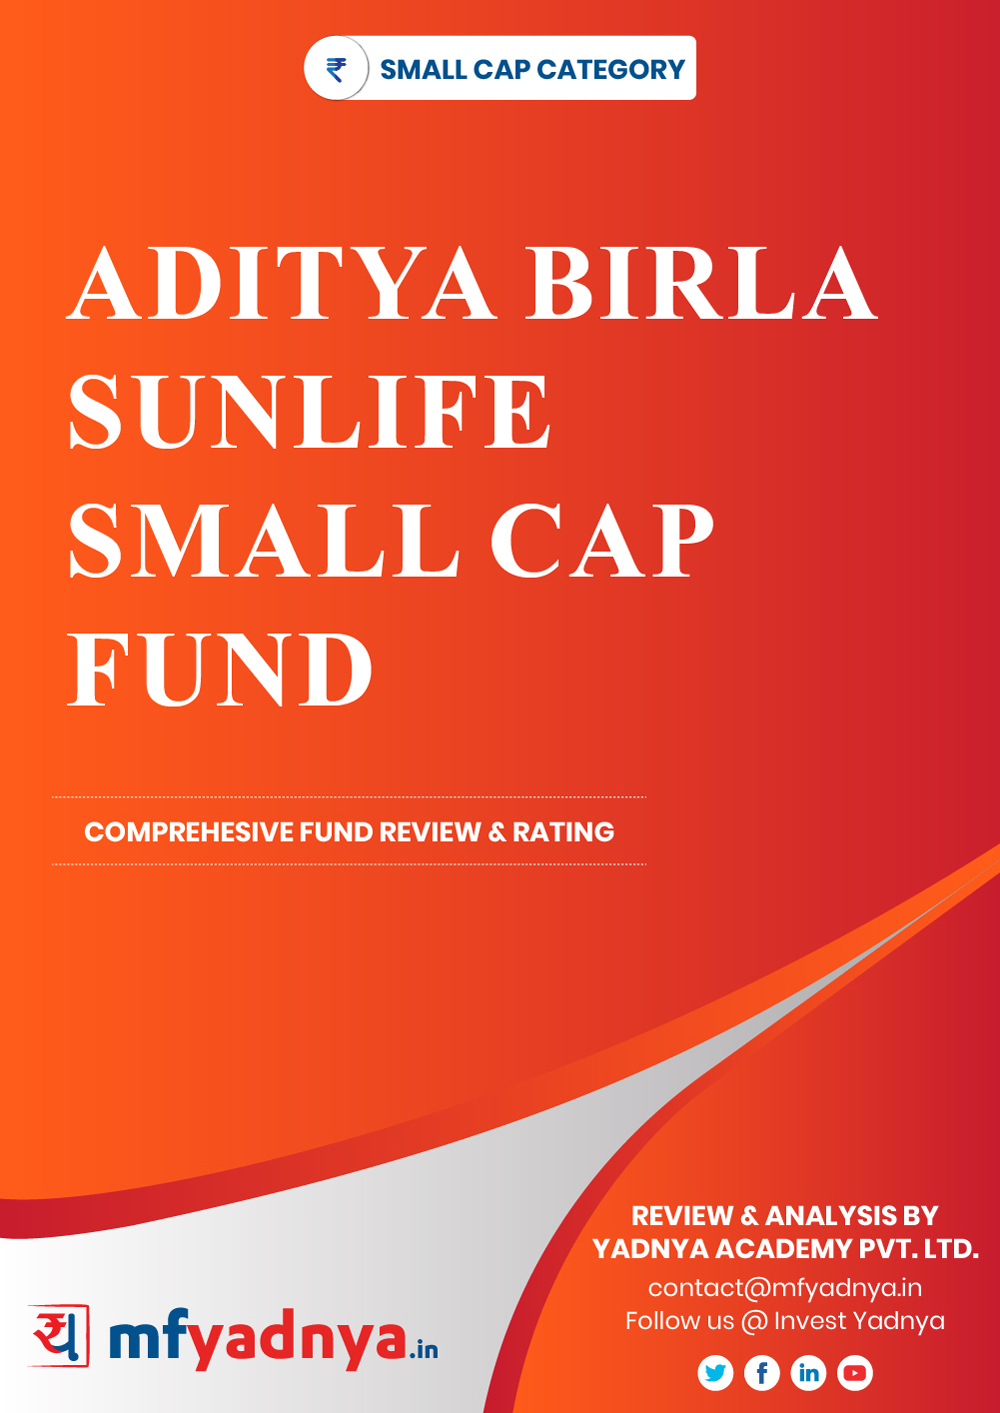 Small Cap Category Review - Aditya Birla Sunlife Small Cap Fund. Most Comprehensive and detailed MF review based on Yadnya's proprietary methodology of Green, Yellow & Red Star. Detailed Analysis & Review based on August 31st, 2019 data.